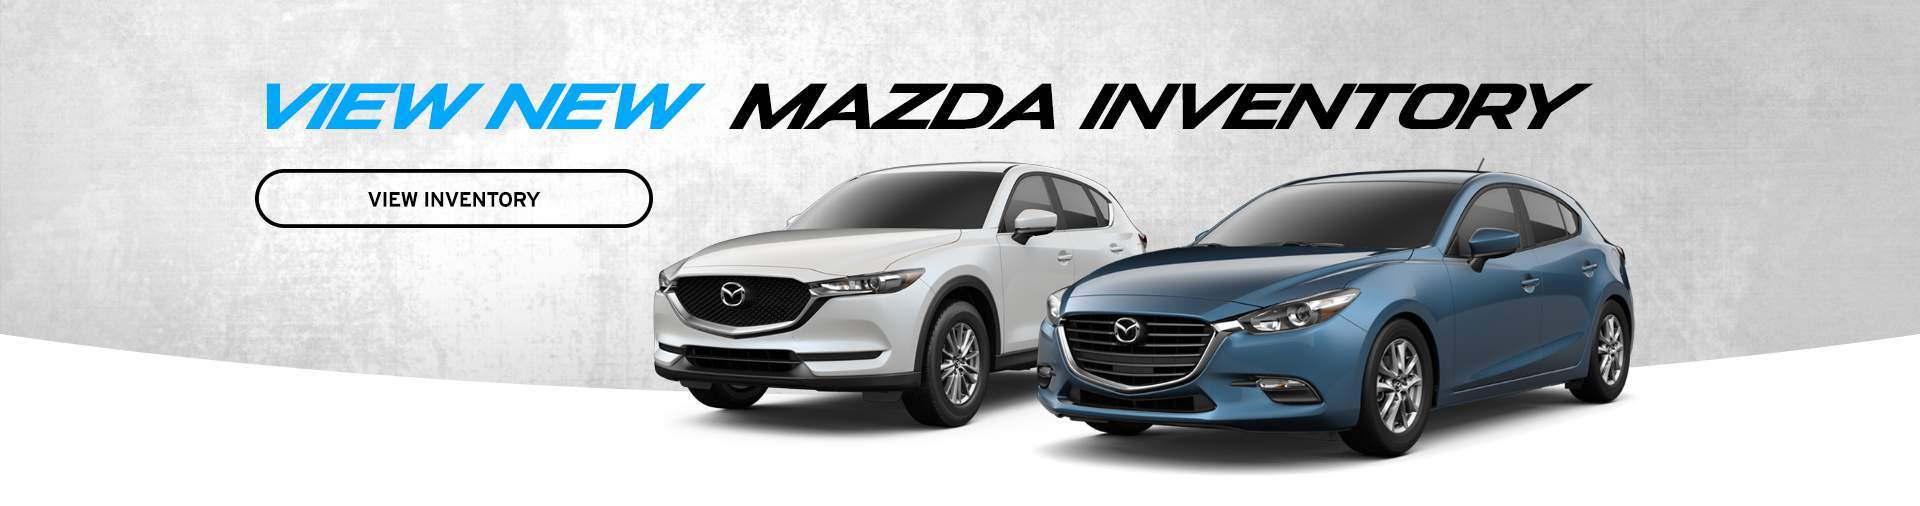 Mazda Volkswagen Dealership Middletown NY | Used Cars Compass Motors